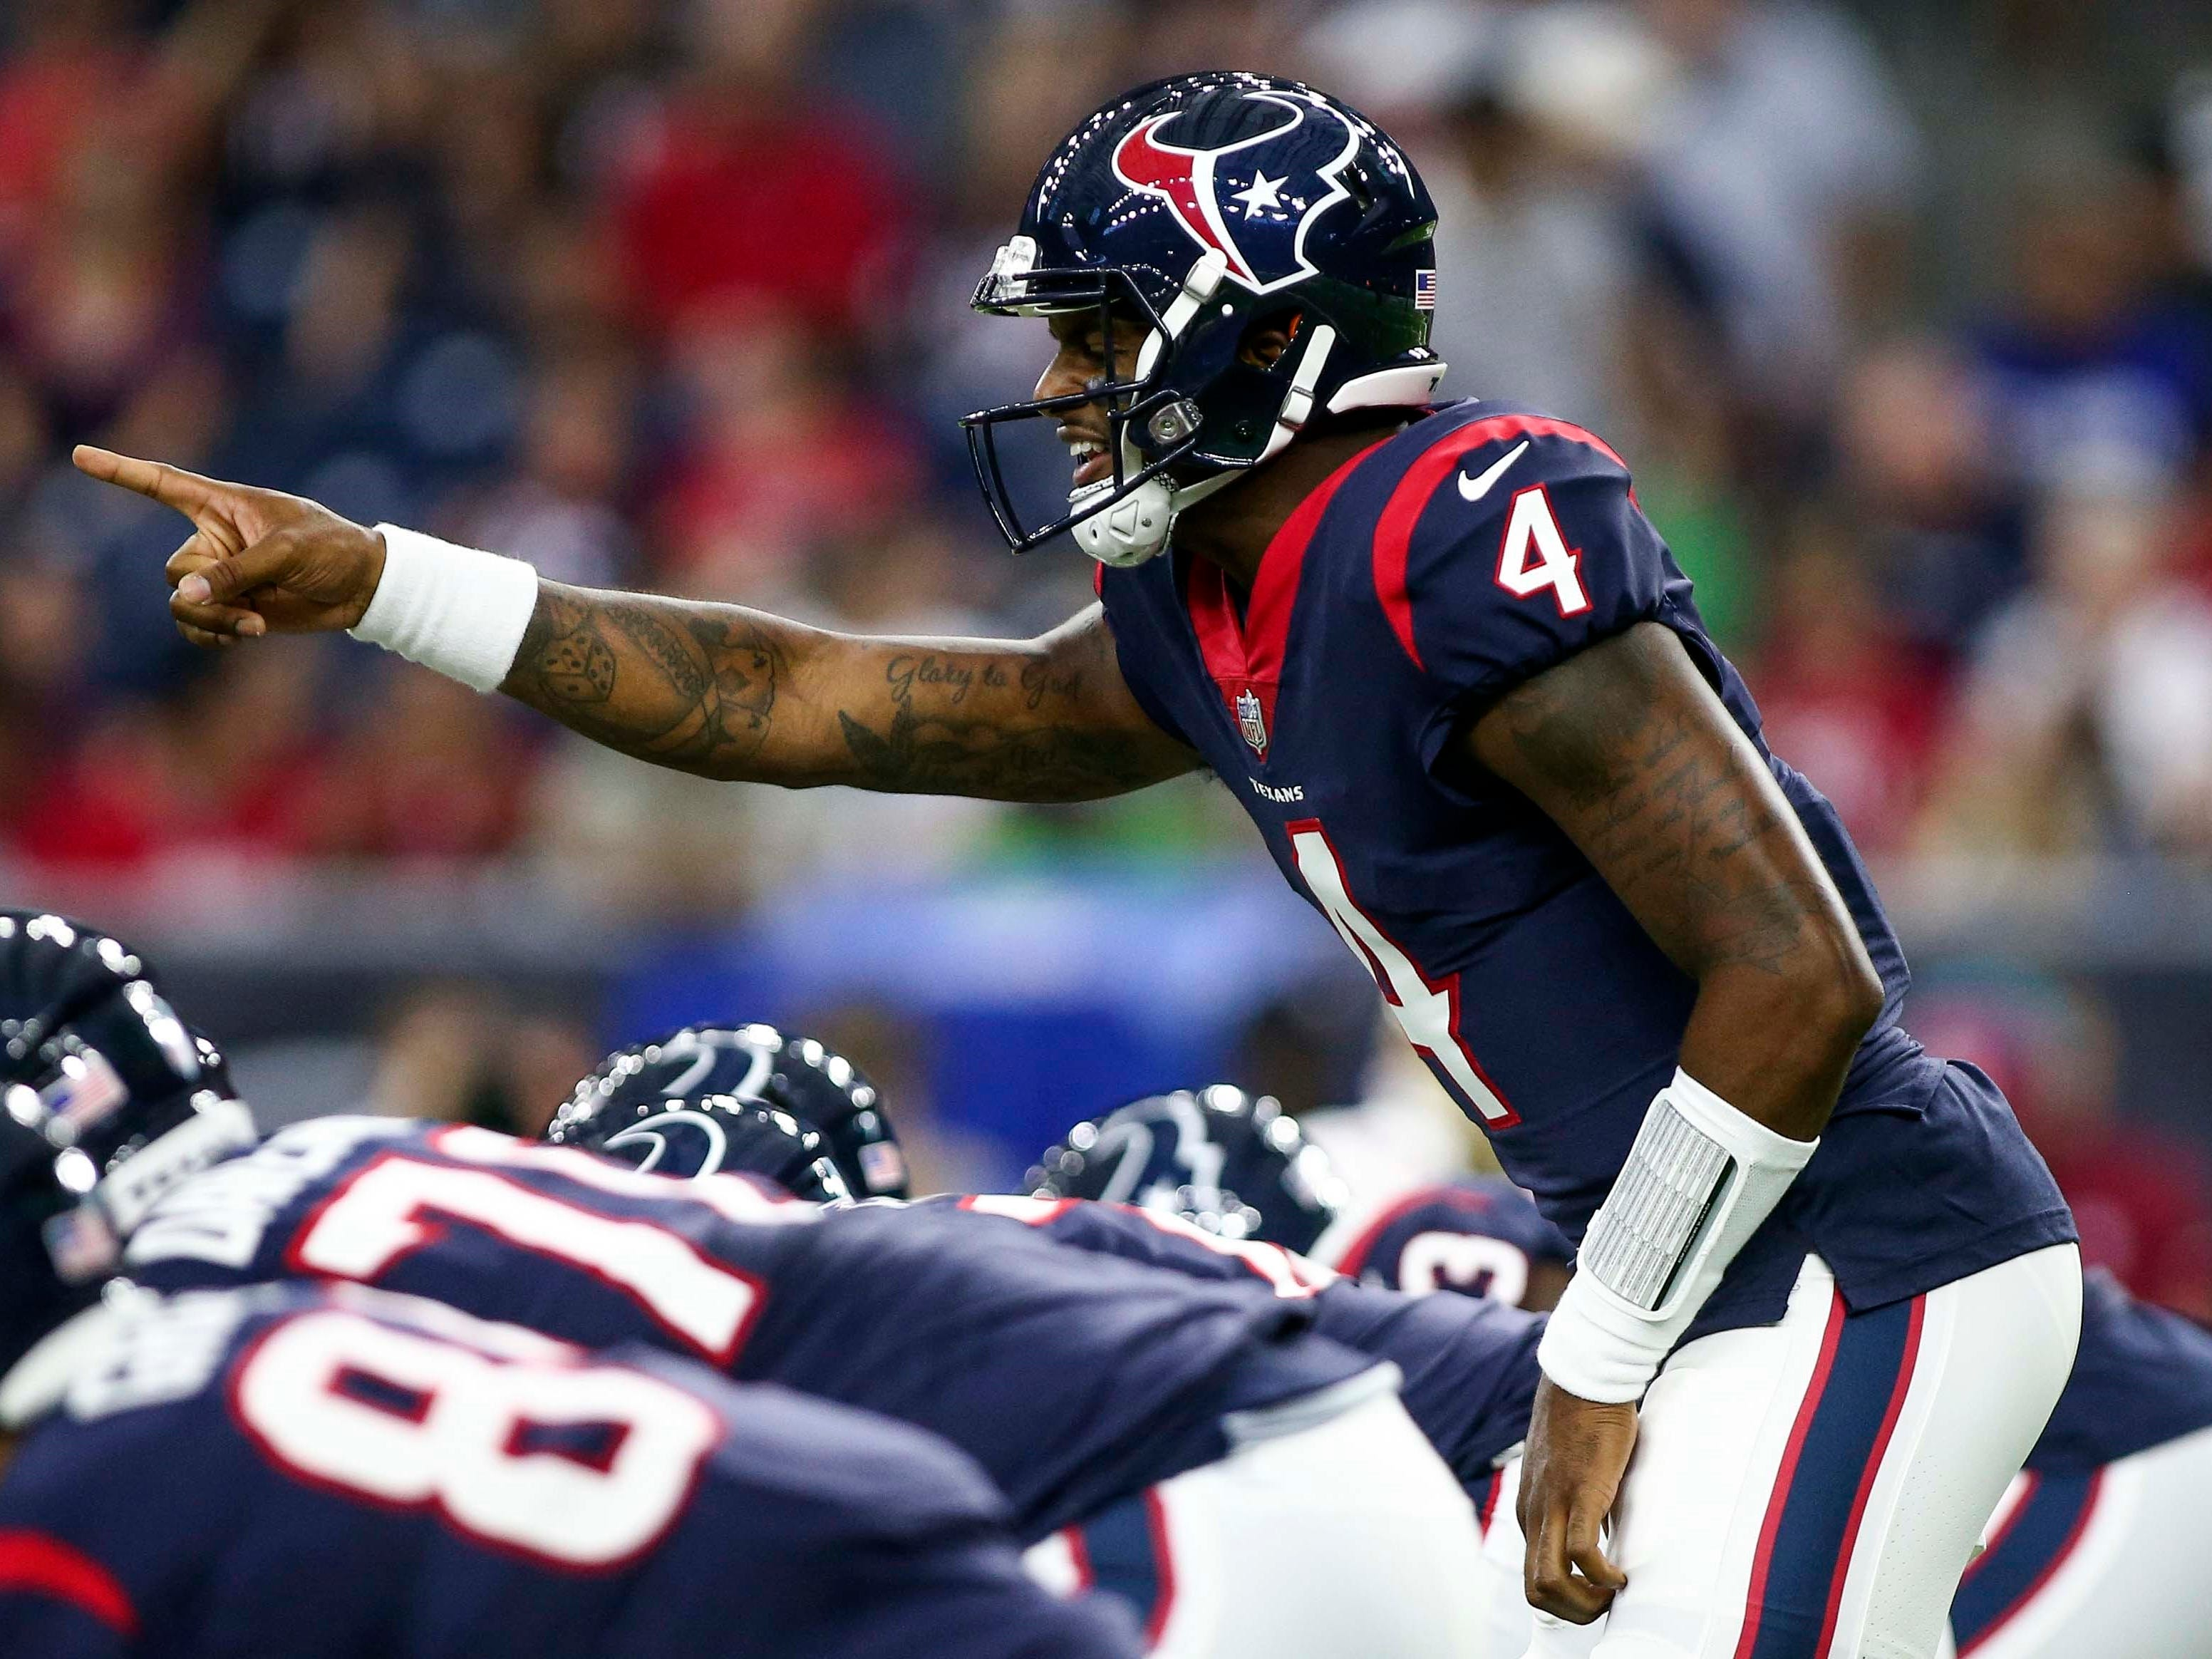 Texans quarterback Deshaun Watson directs the offense during the first quarter against the 49ers at NRG Stadium.